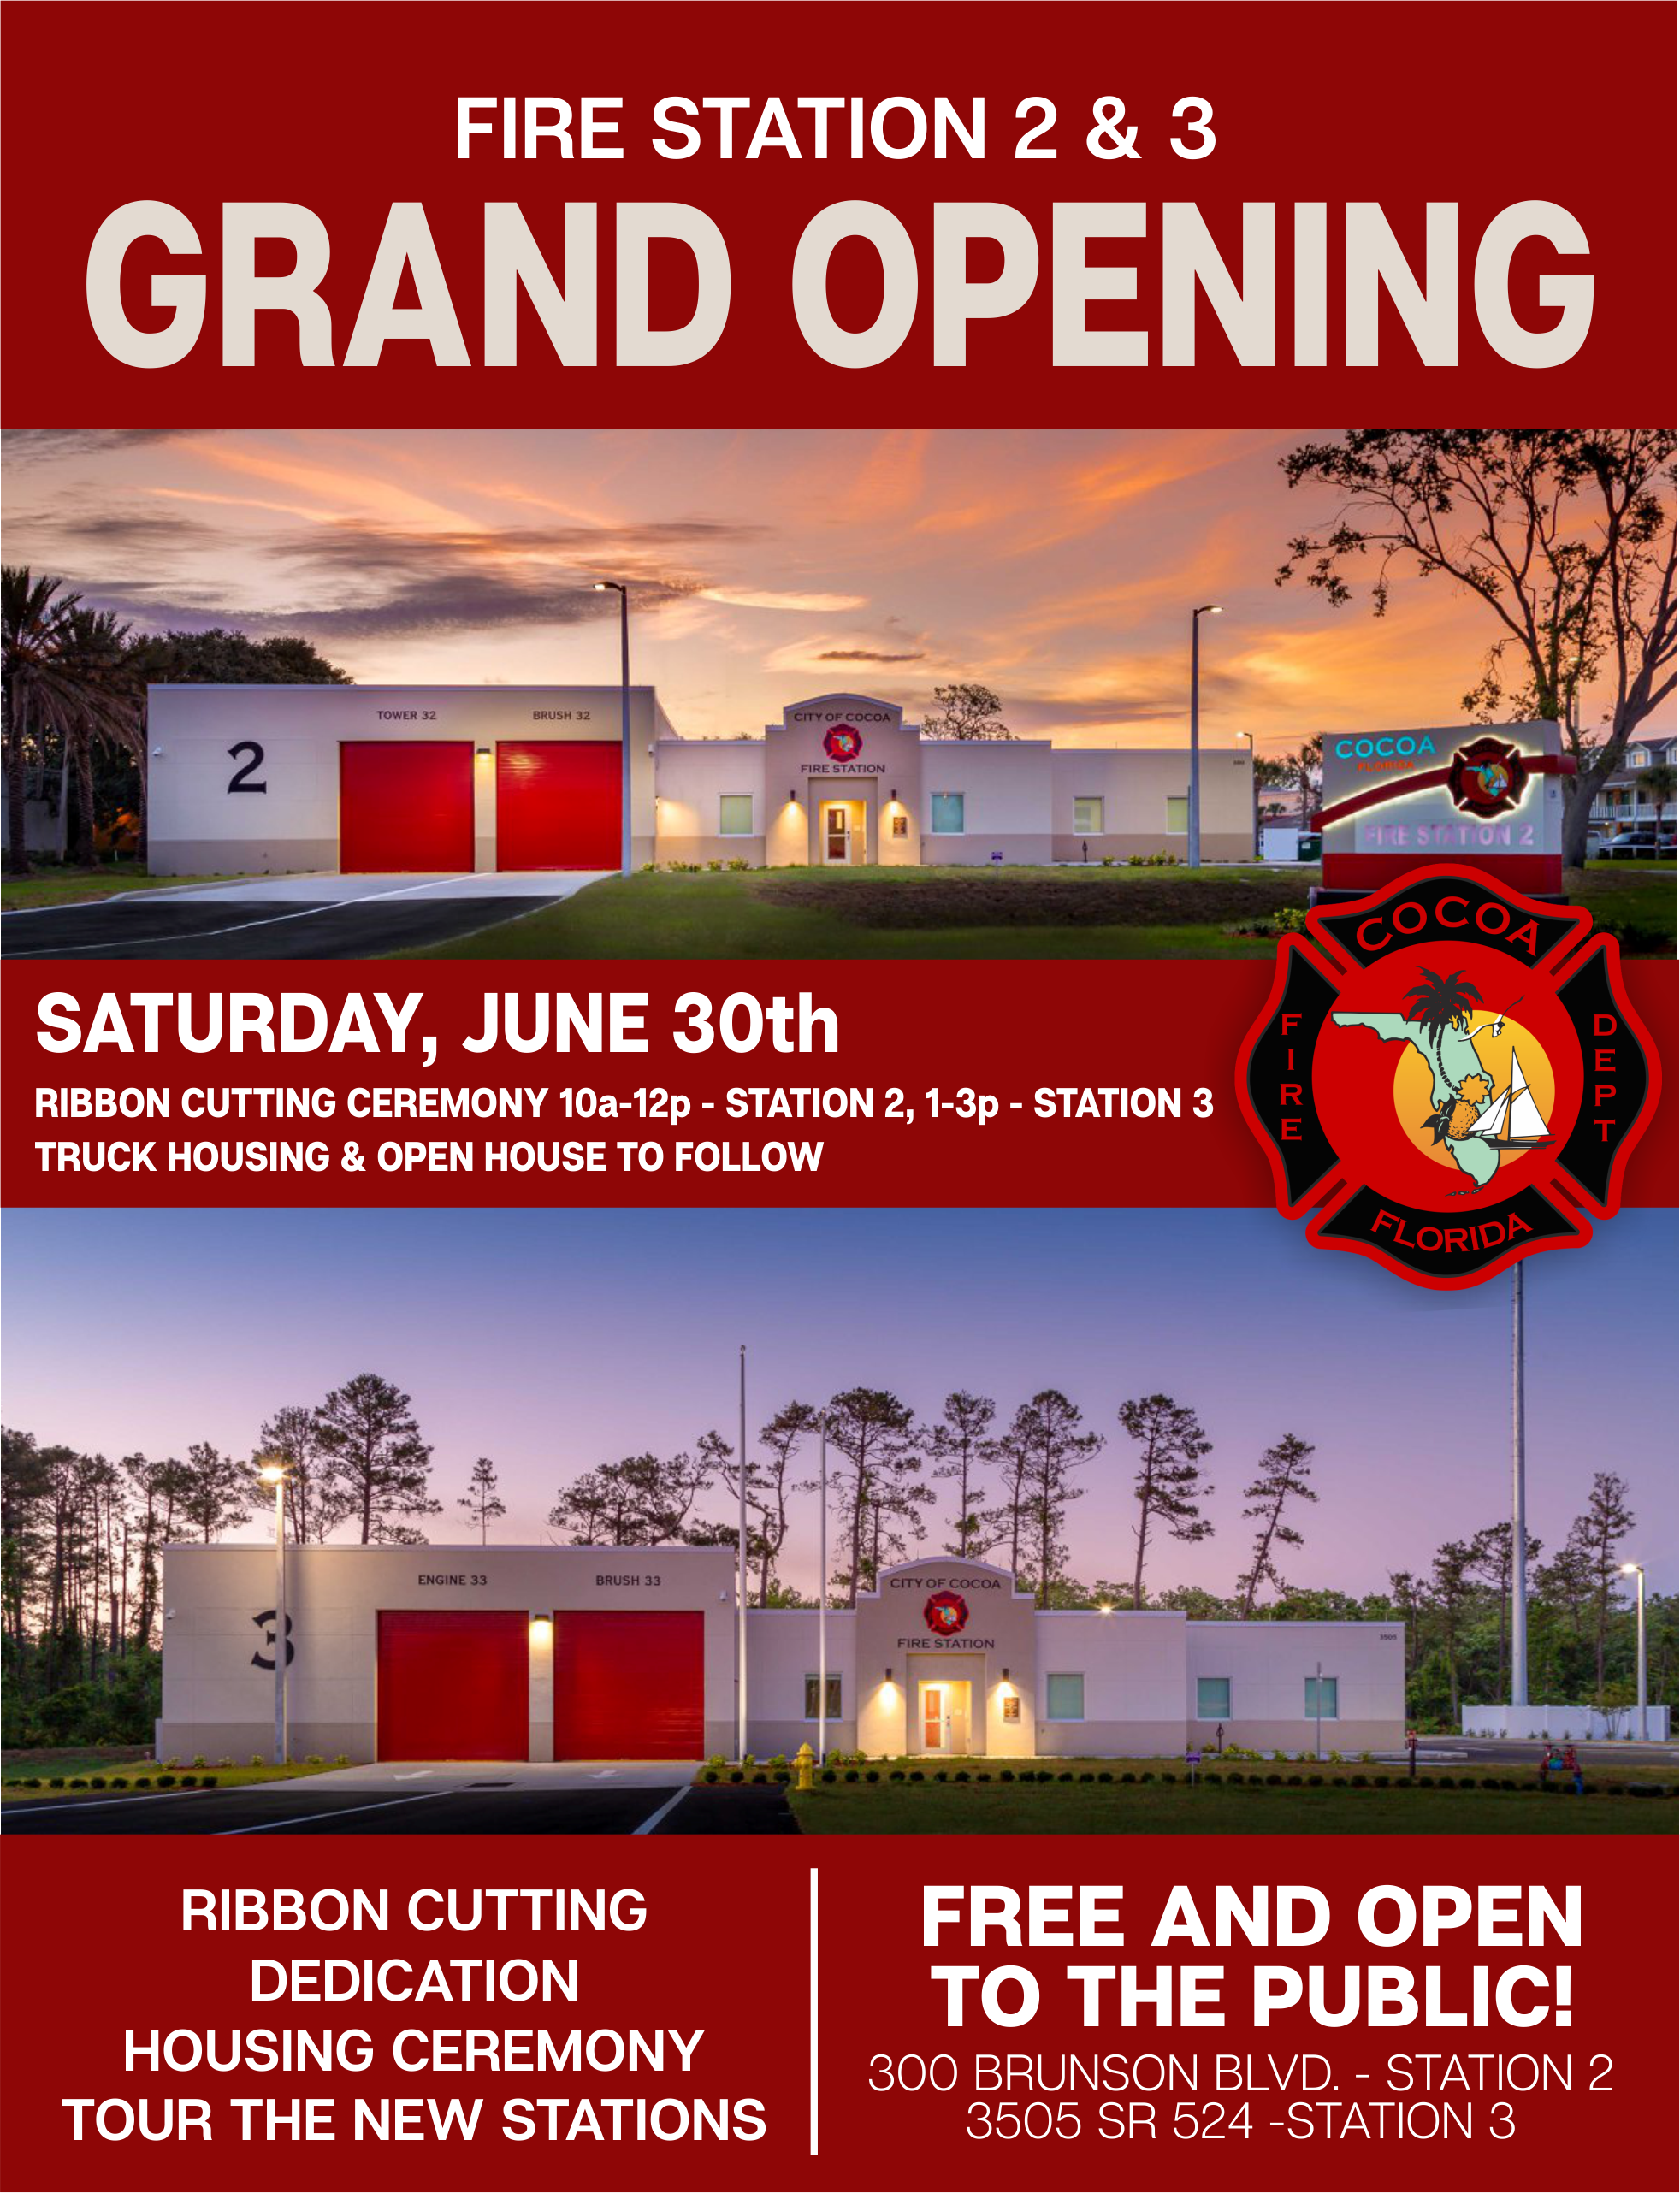 Cocoa fl official website fire station 2 and 3 invitation to grand opening events stopboris Gallery